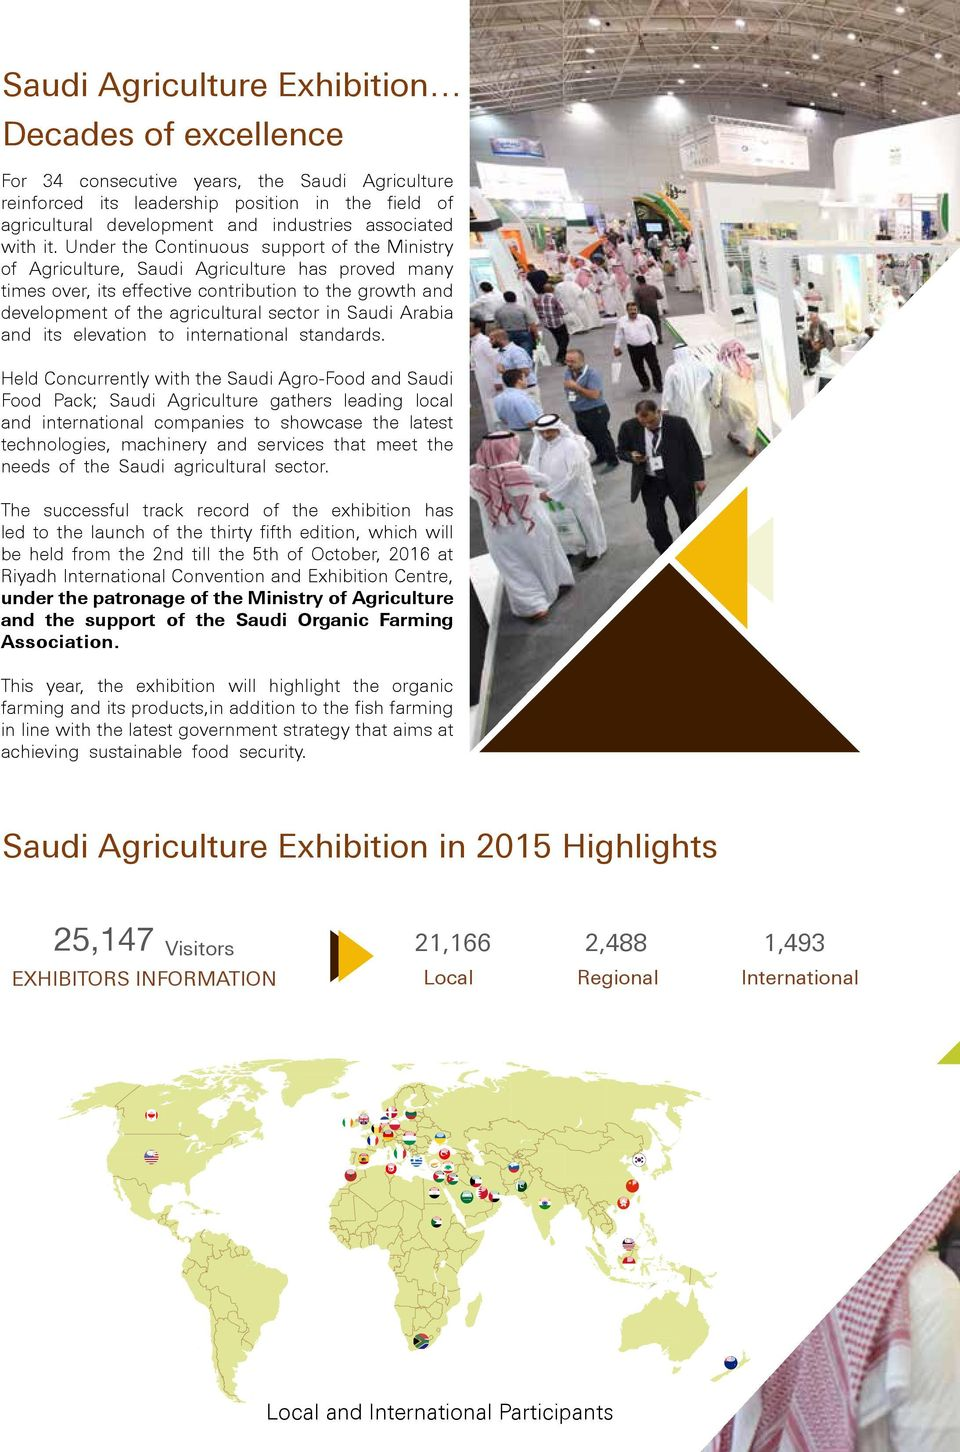 Under the Continuous support of the Ministry of Agriculture, Saudi Agriculture has proved many times over, its effective contribution to the growth and development of the agricultural sector in Saudi